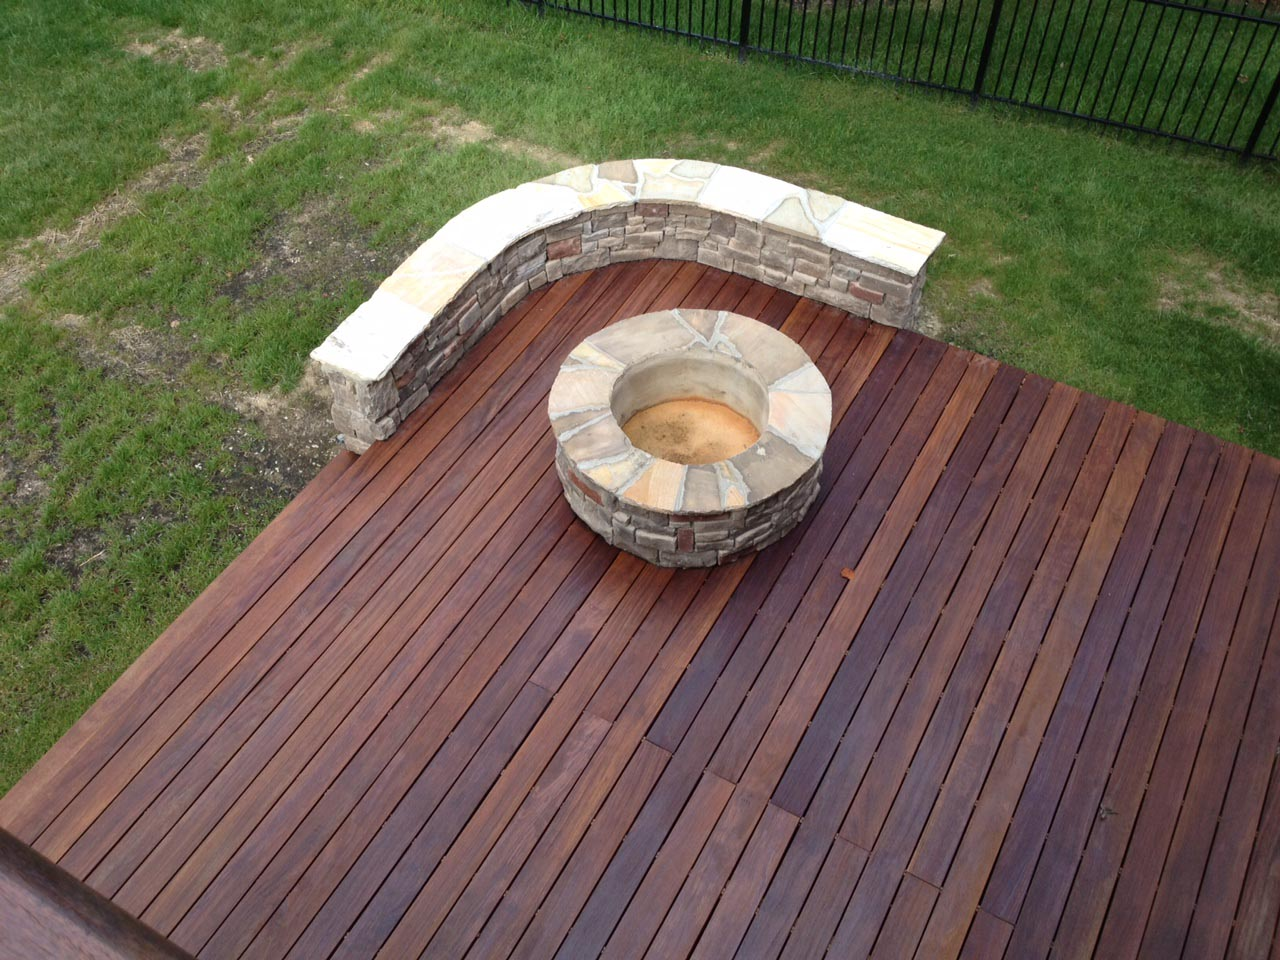 Fire pit with wooden deck